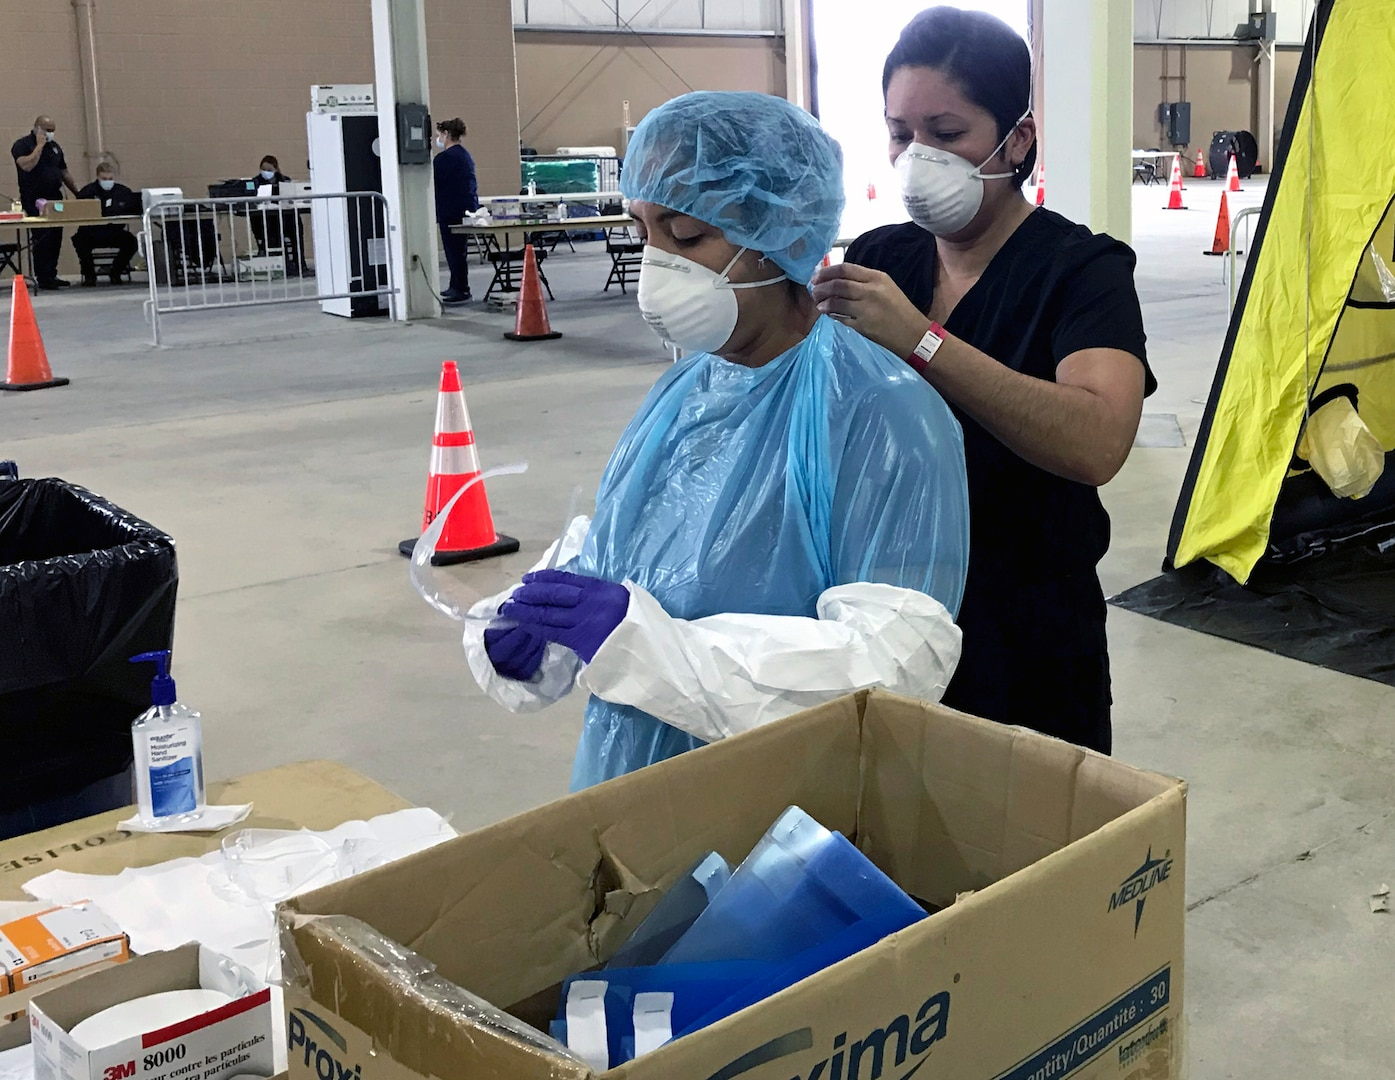 Capt. Gabriella Torres assists Capt. Denise Rodriguez with securing her personal protective equipment.